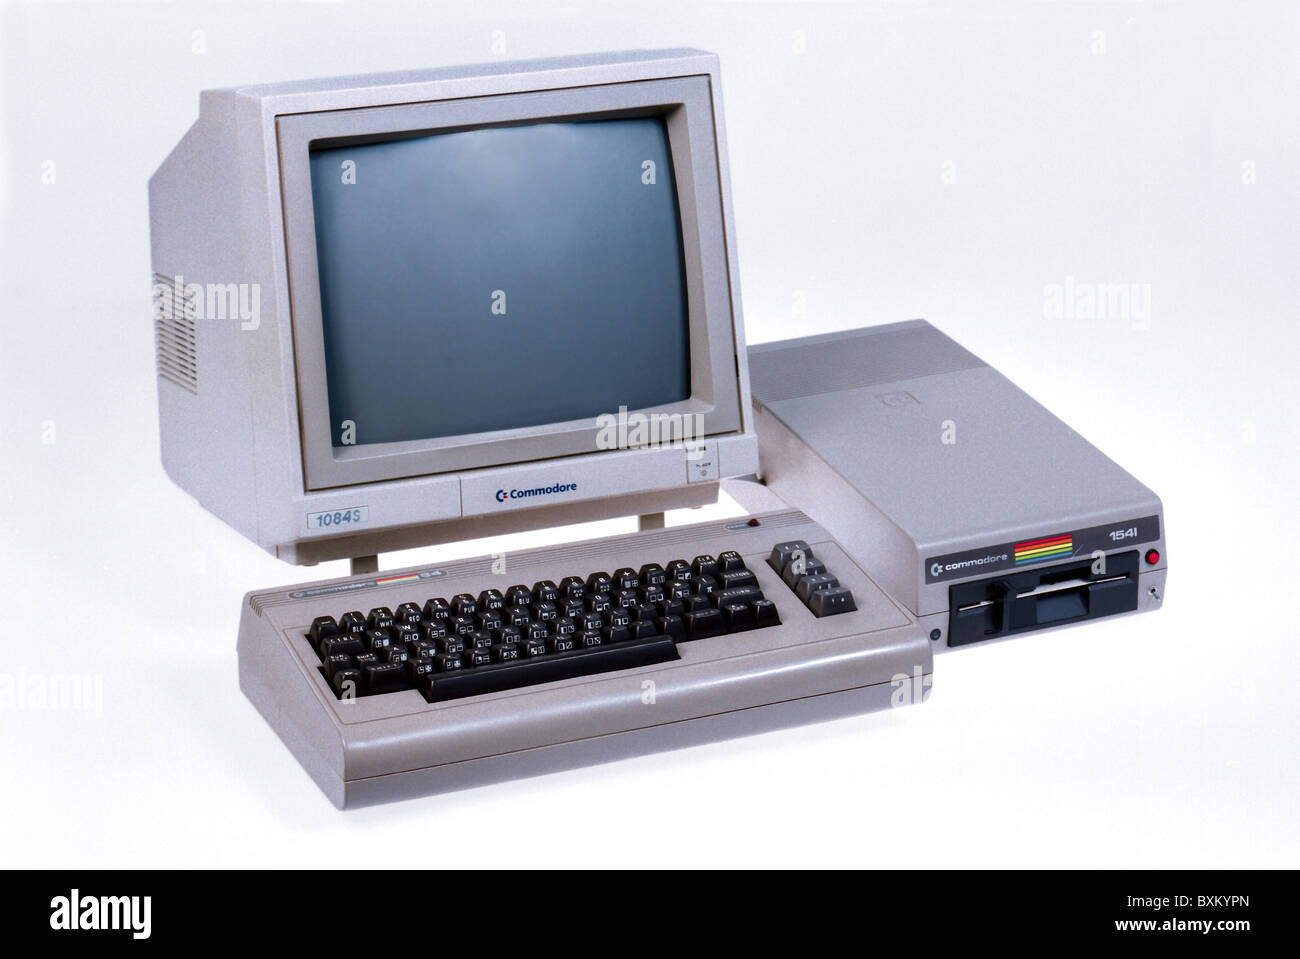 computing / electronics, computer, Commodore C64, 1982, 1980s, 80s, 20th century, historic, historical, C 64 Homecomputer, Stock Photo